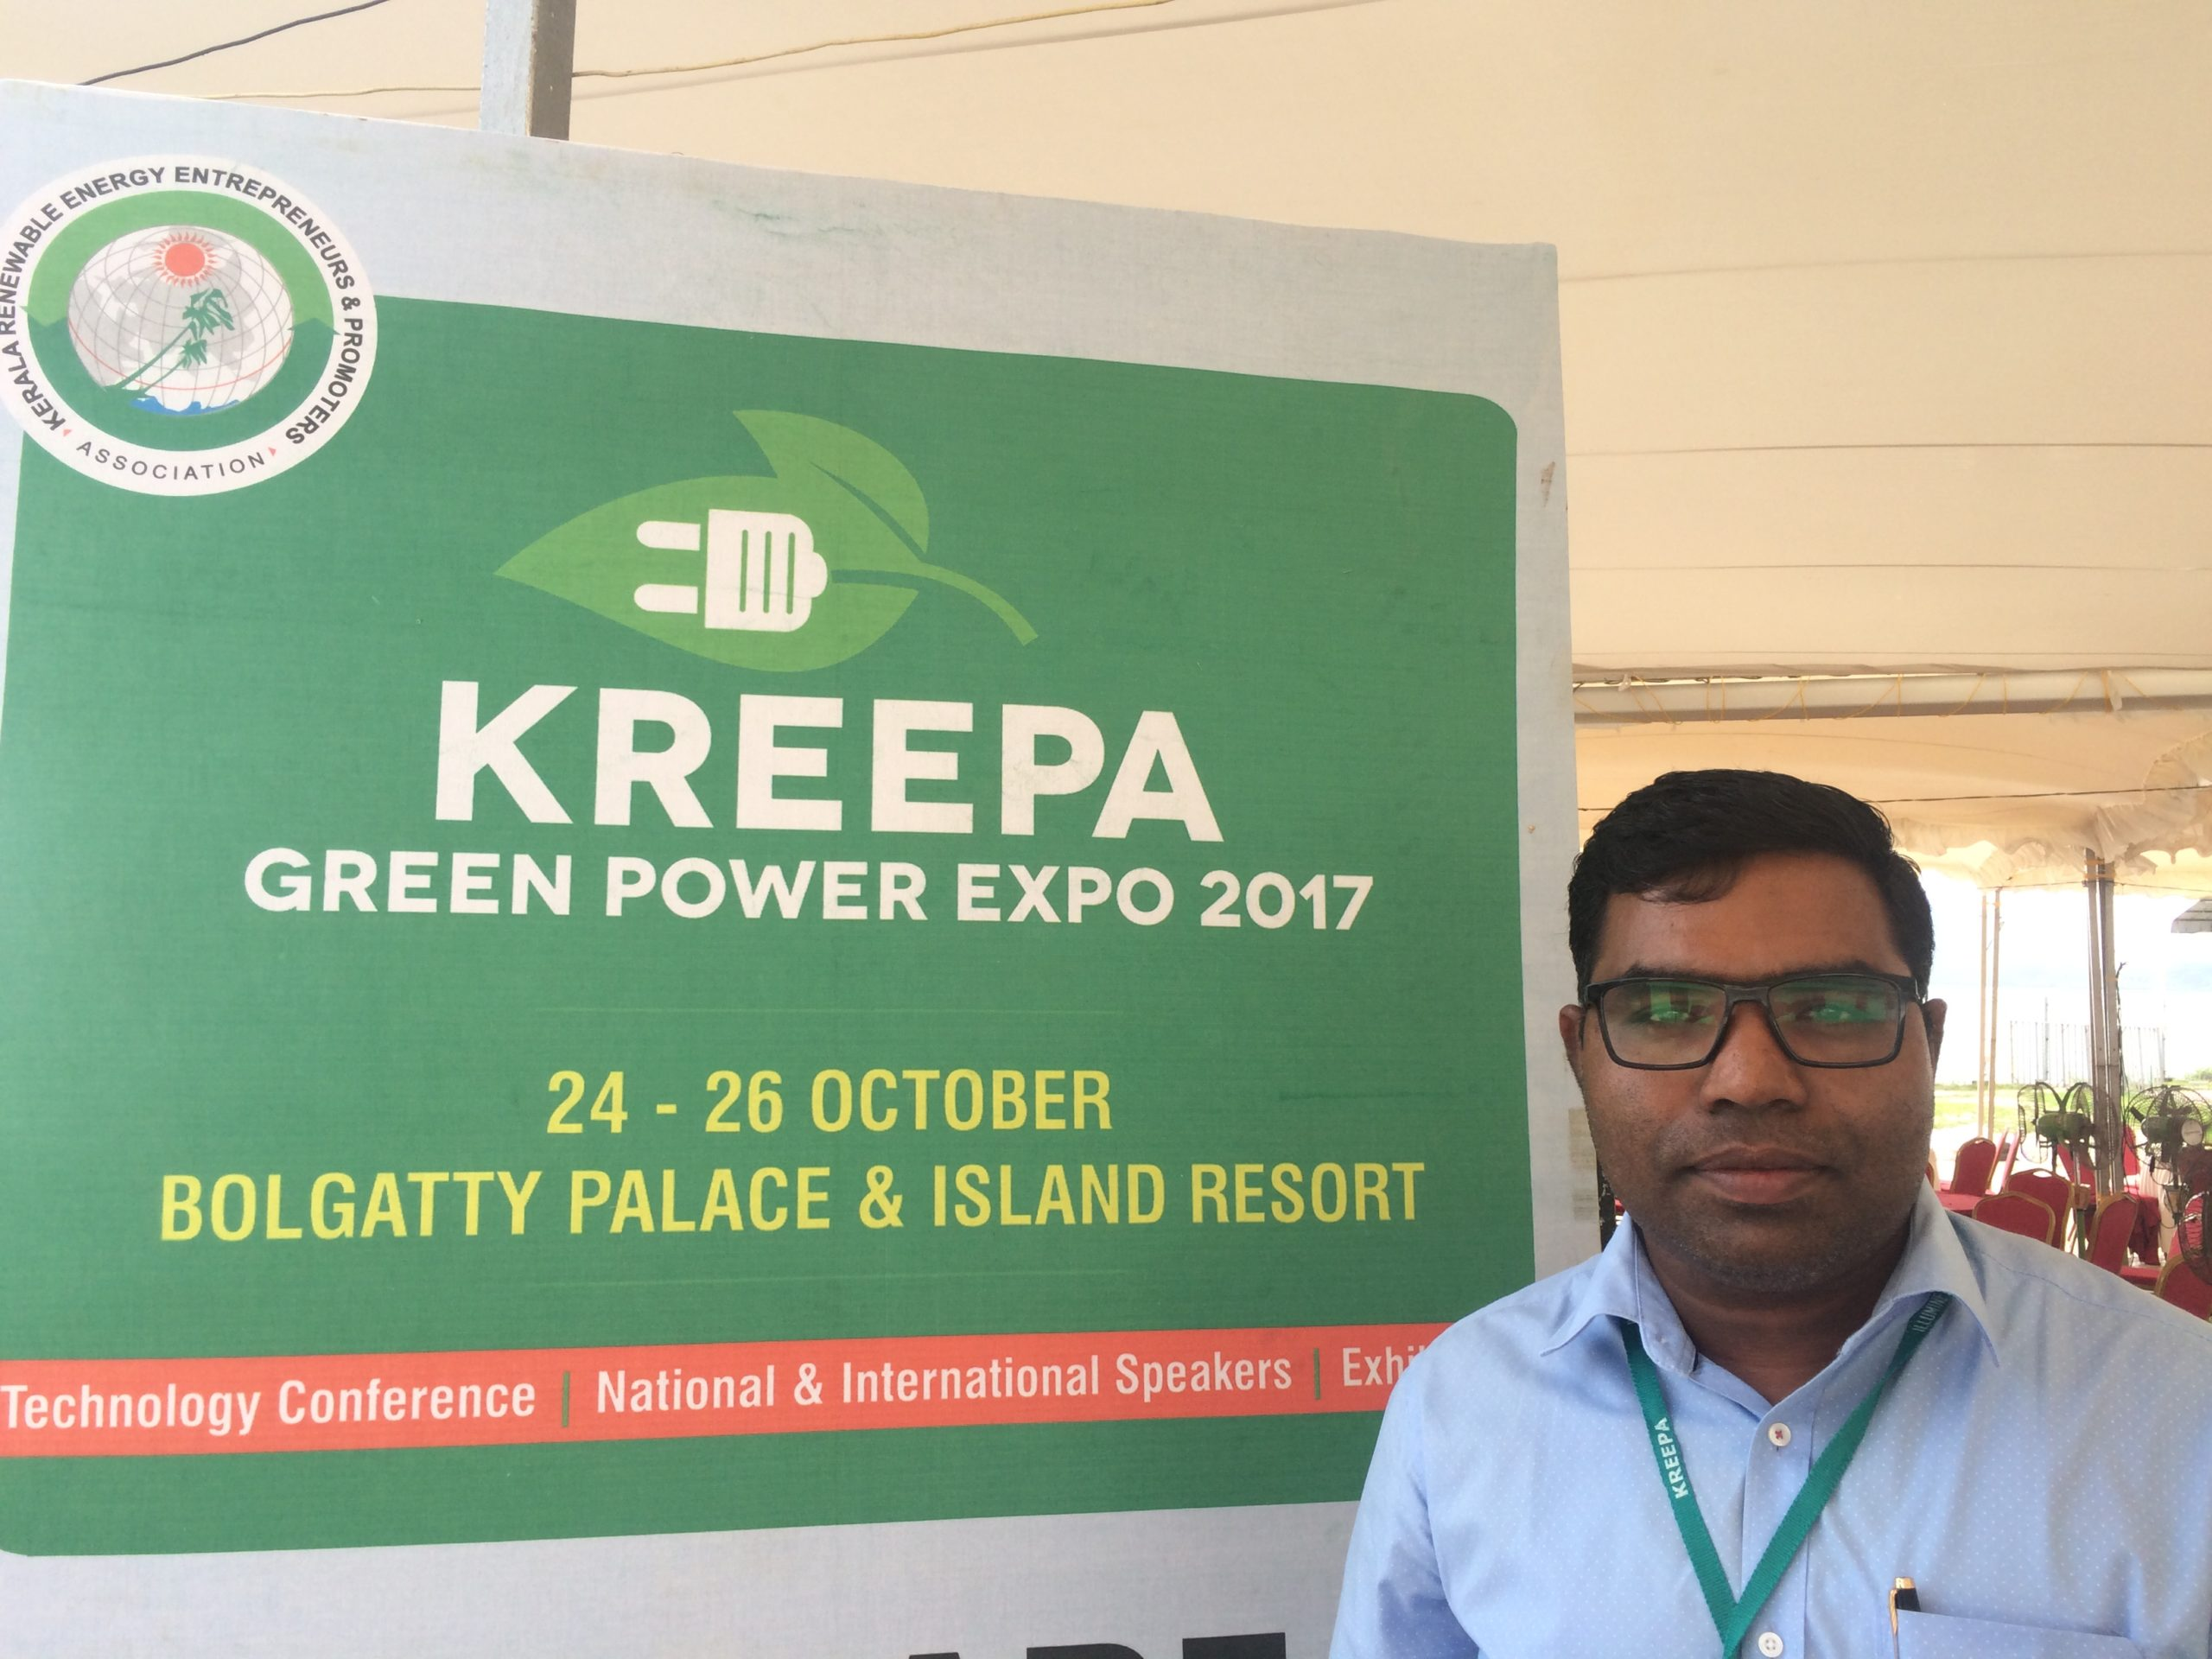 Terence Alex, founder and CEO of Wattsun Energy at the Green Power Expo in Kochi. Credit: Tom Kenning